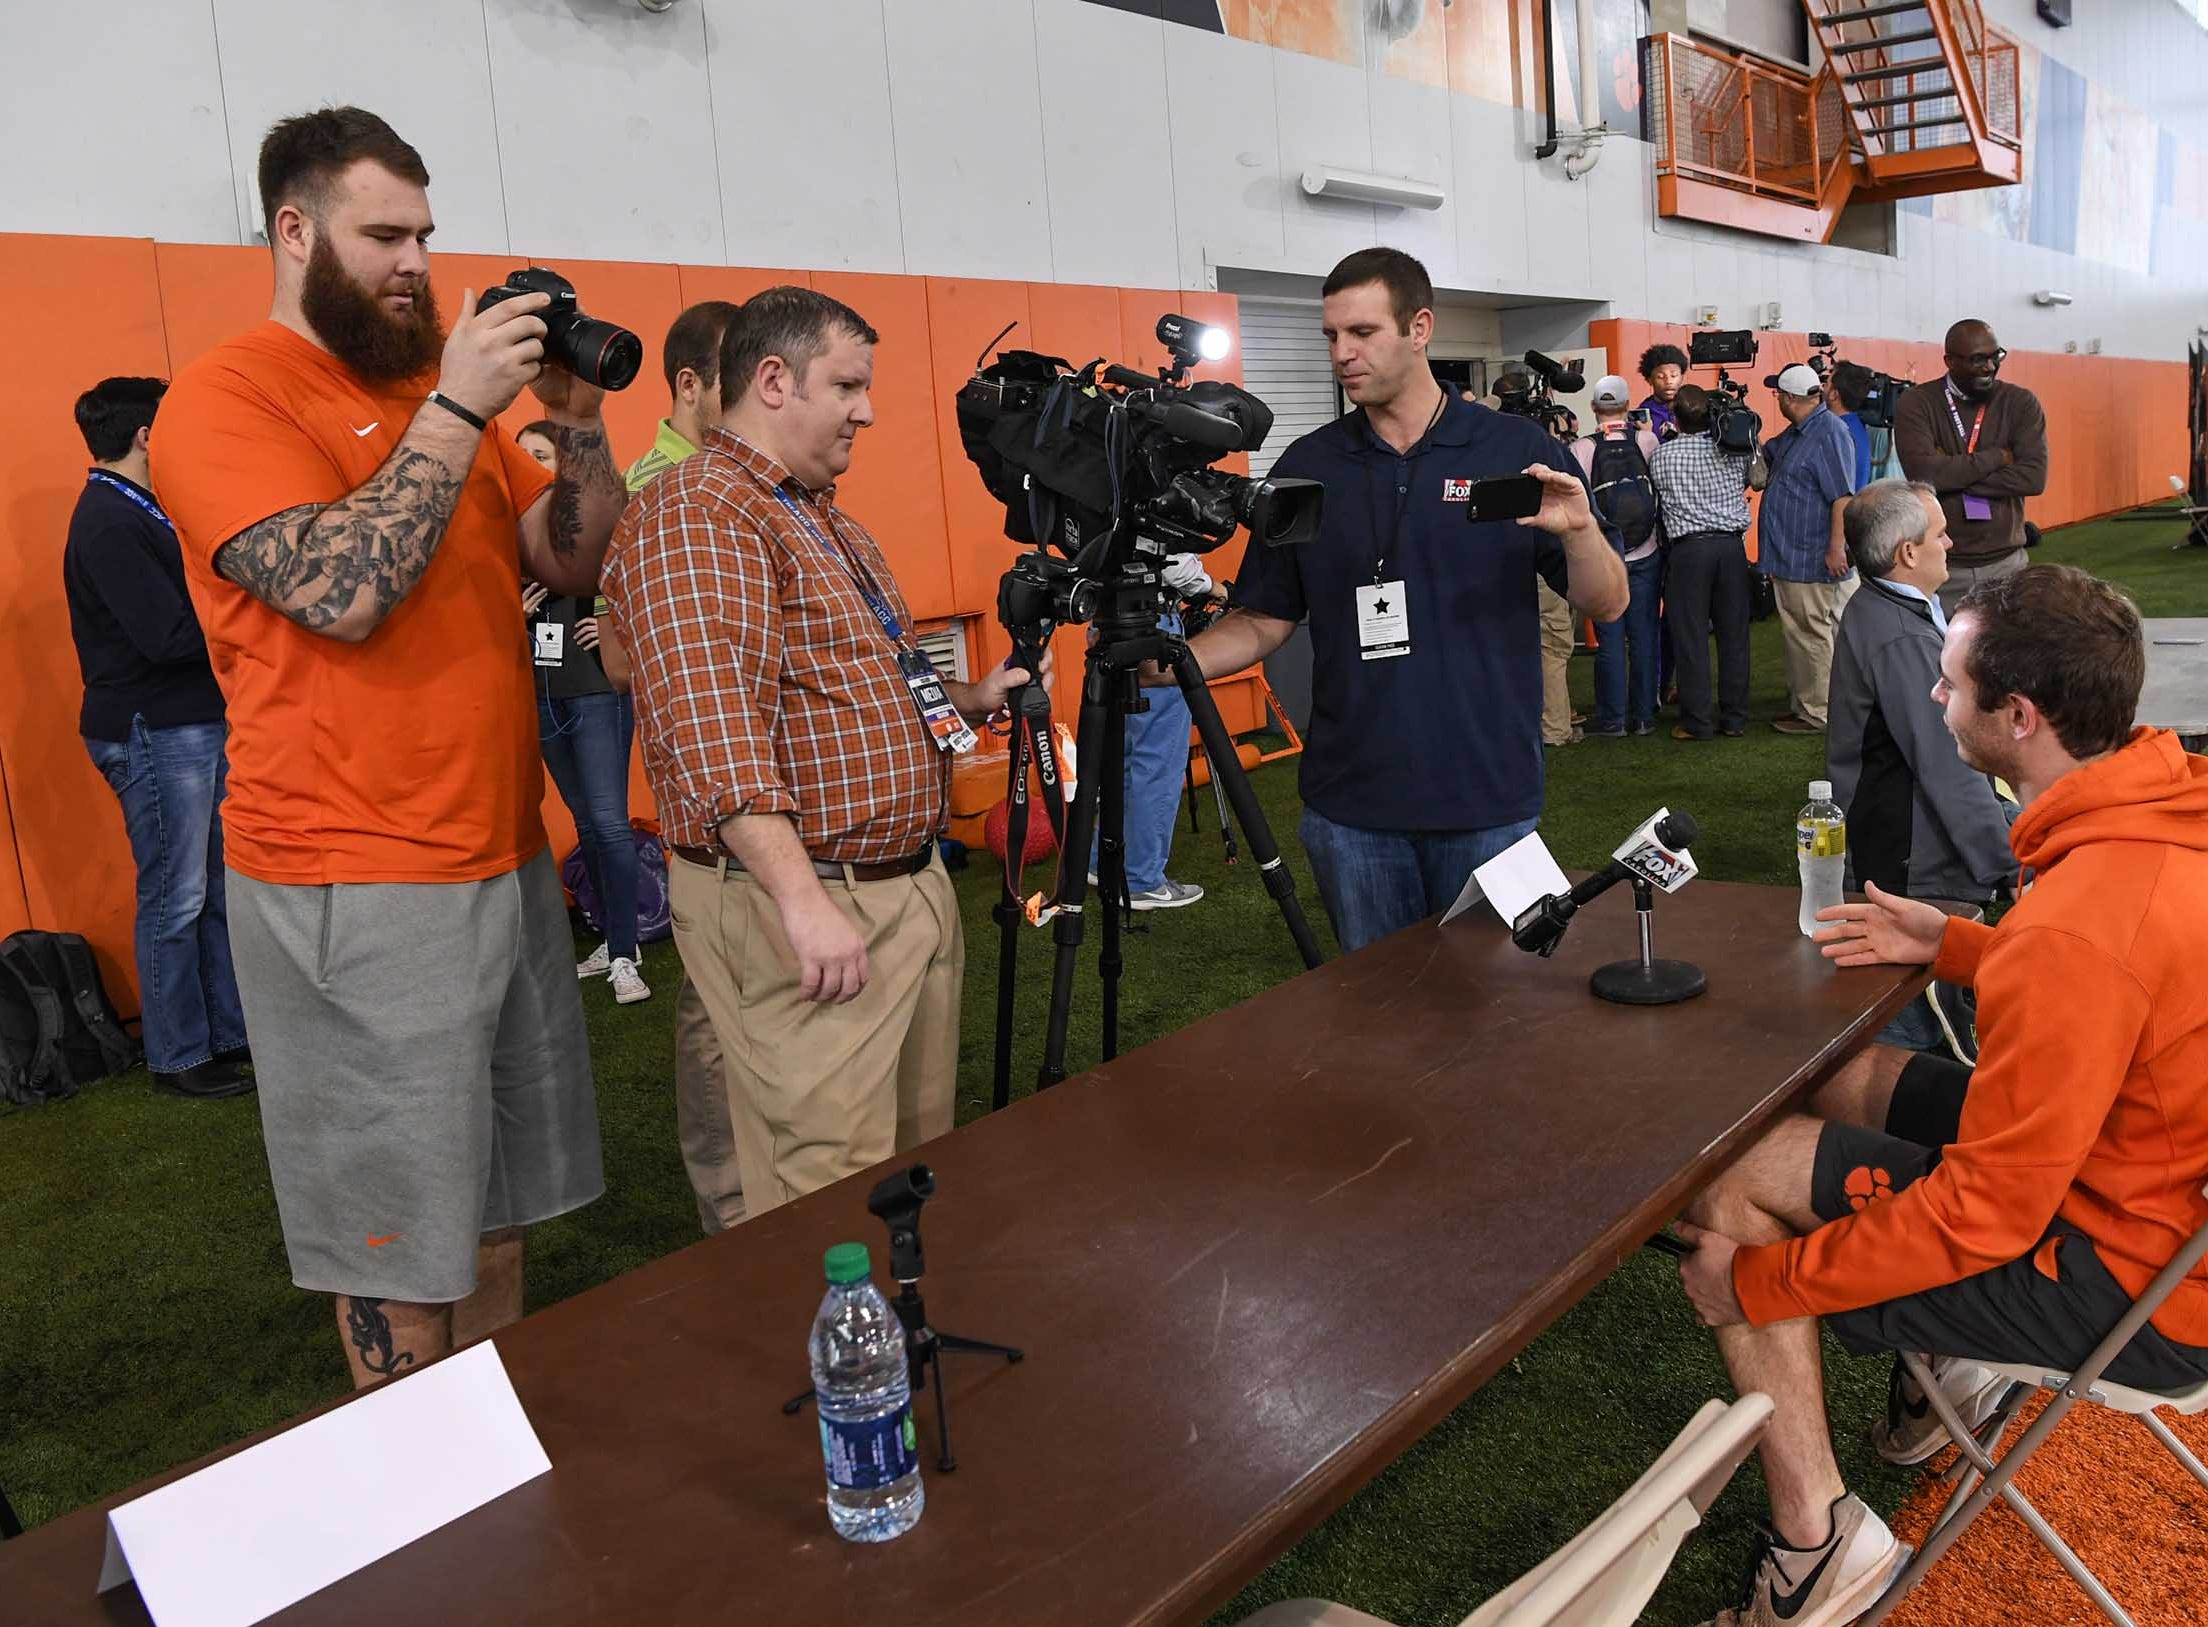 Clemson offensive lineman Sean Pollard, left, takes photos of wide receiver Hunter Renfrow, right, during media day in the Poe Indoor Facility in Clemson Wednesday, January 2, 2019.